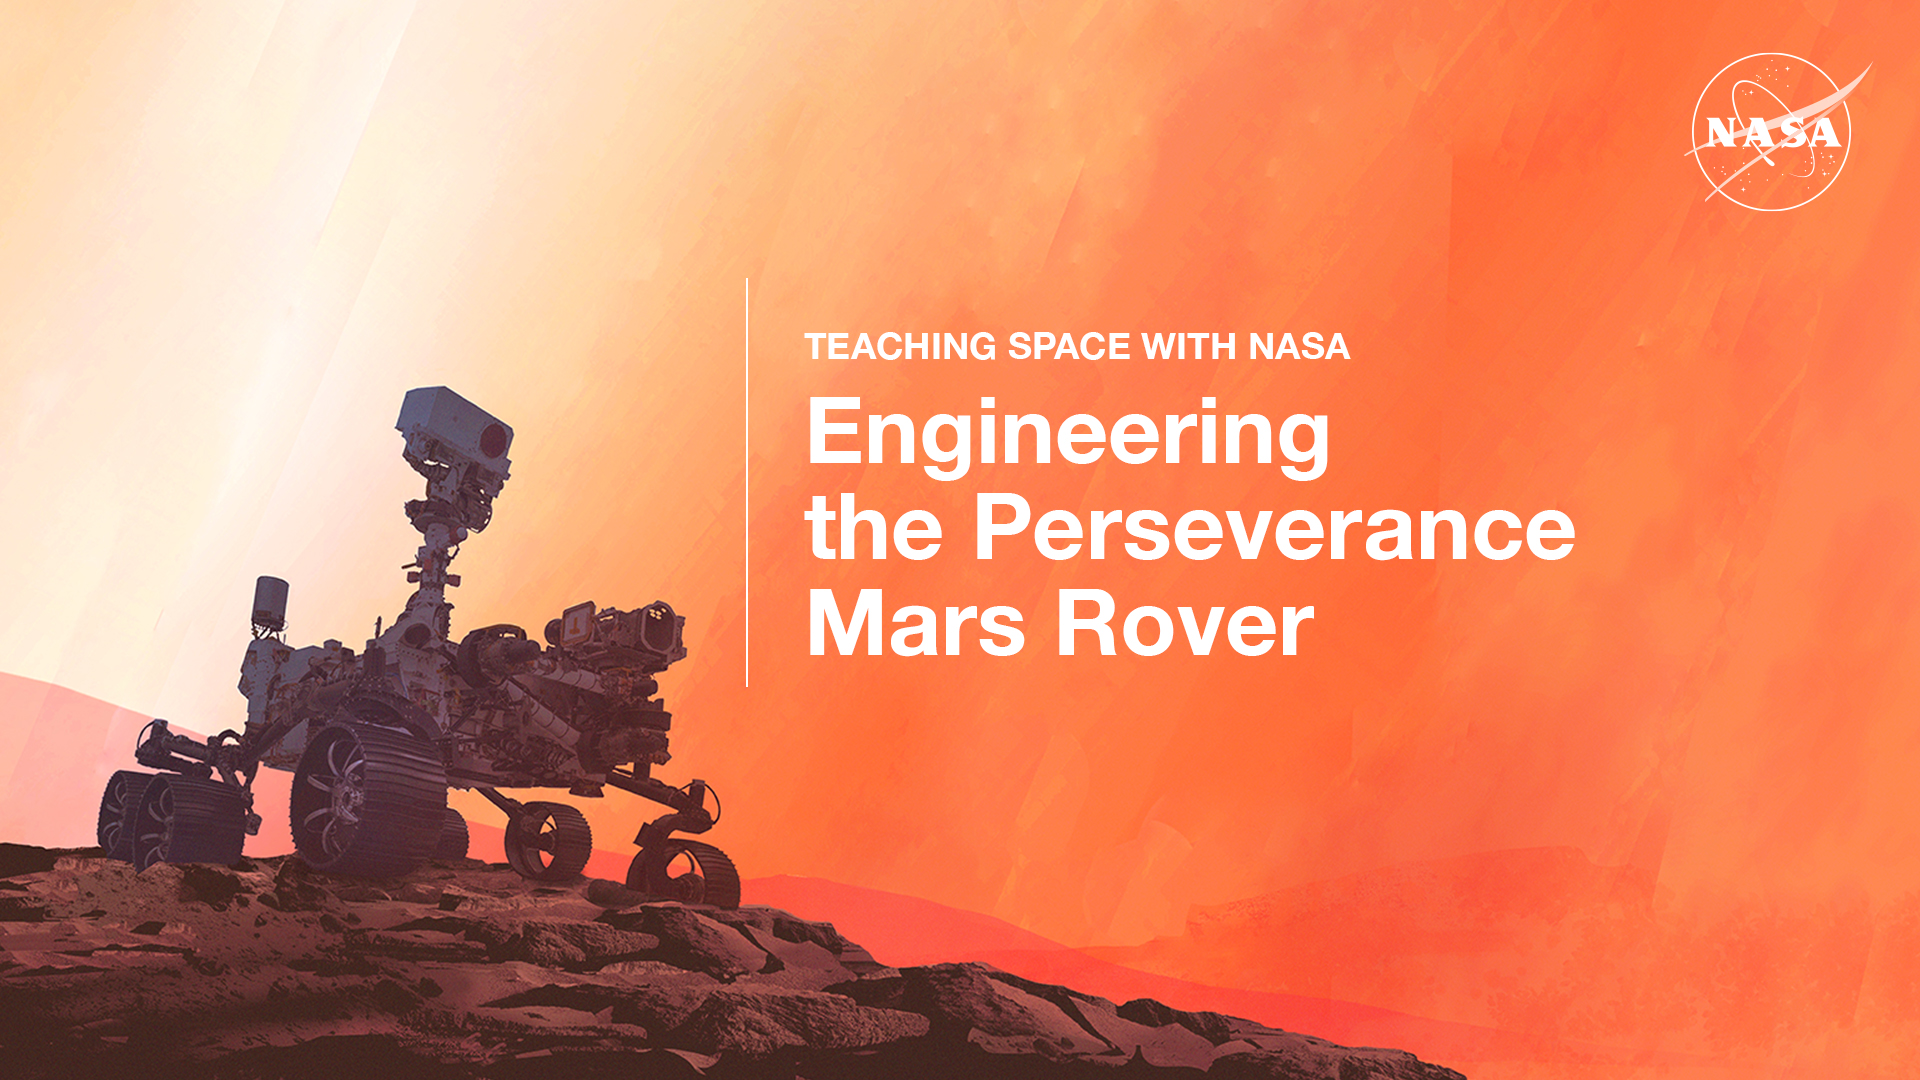 Graphic showing the Perseverance rover on Mars